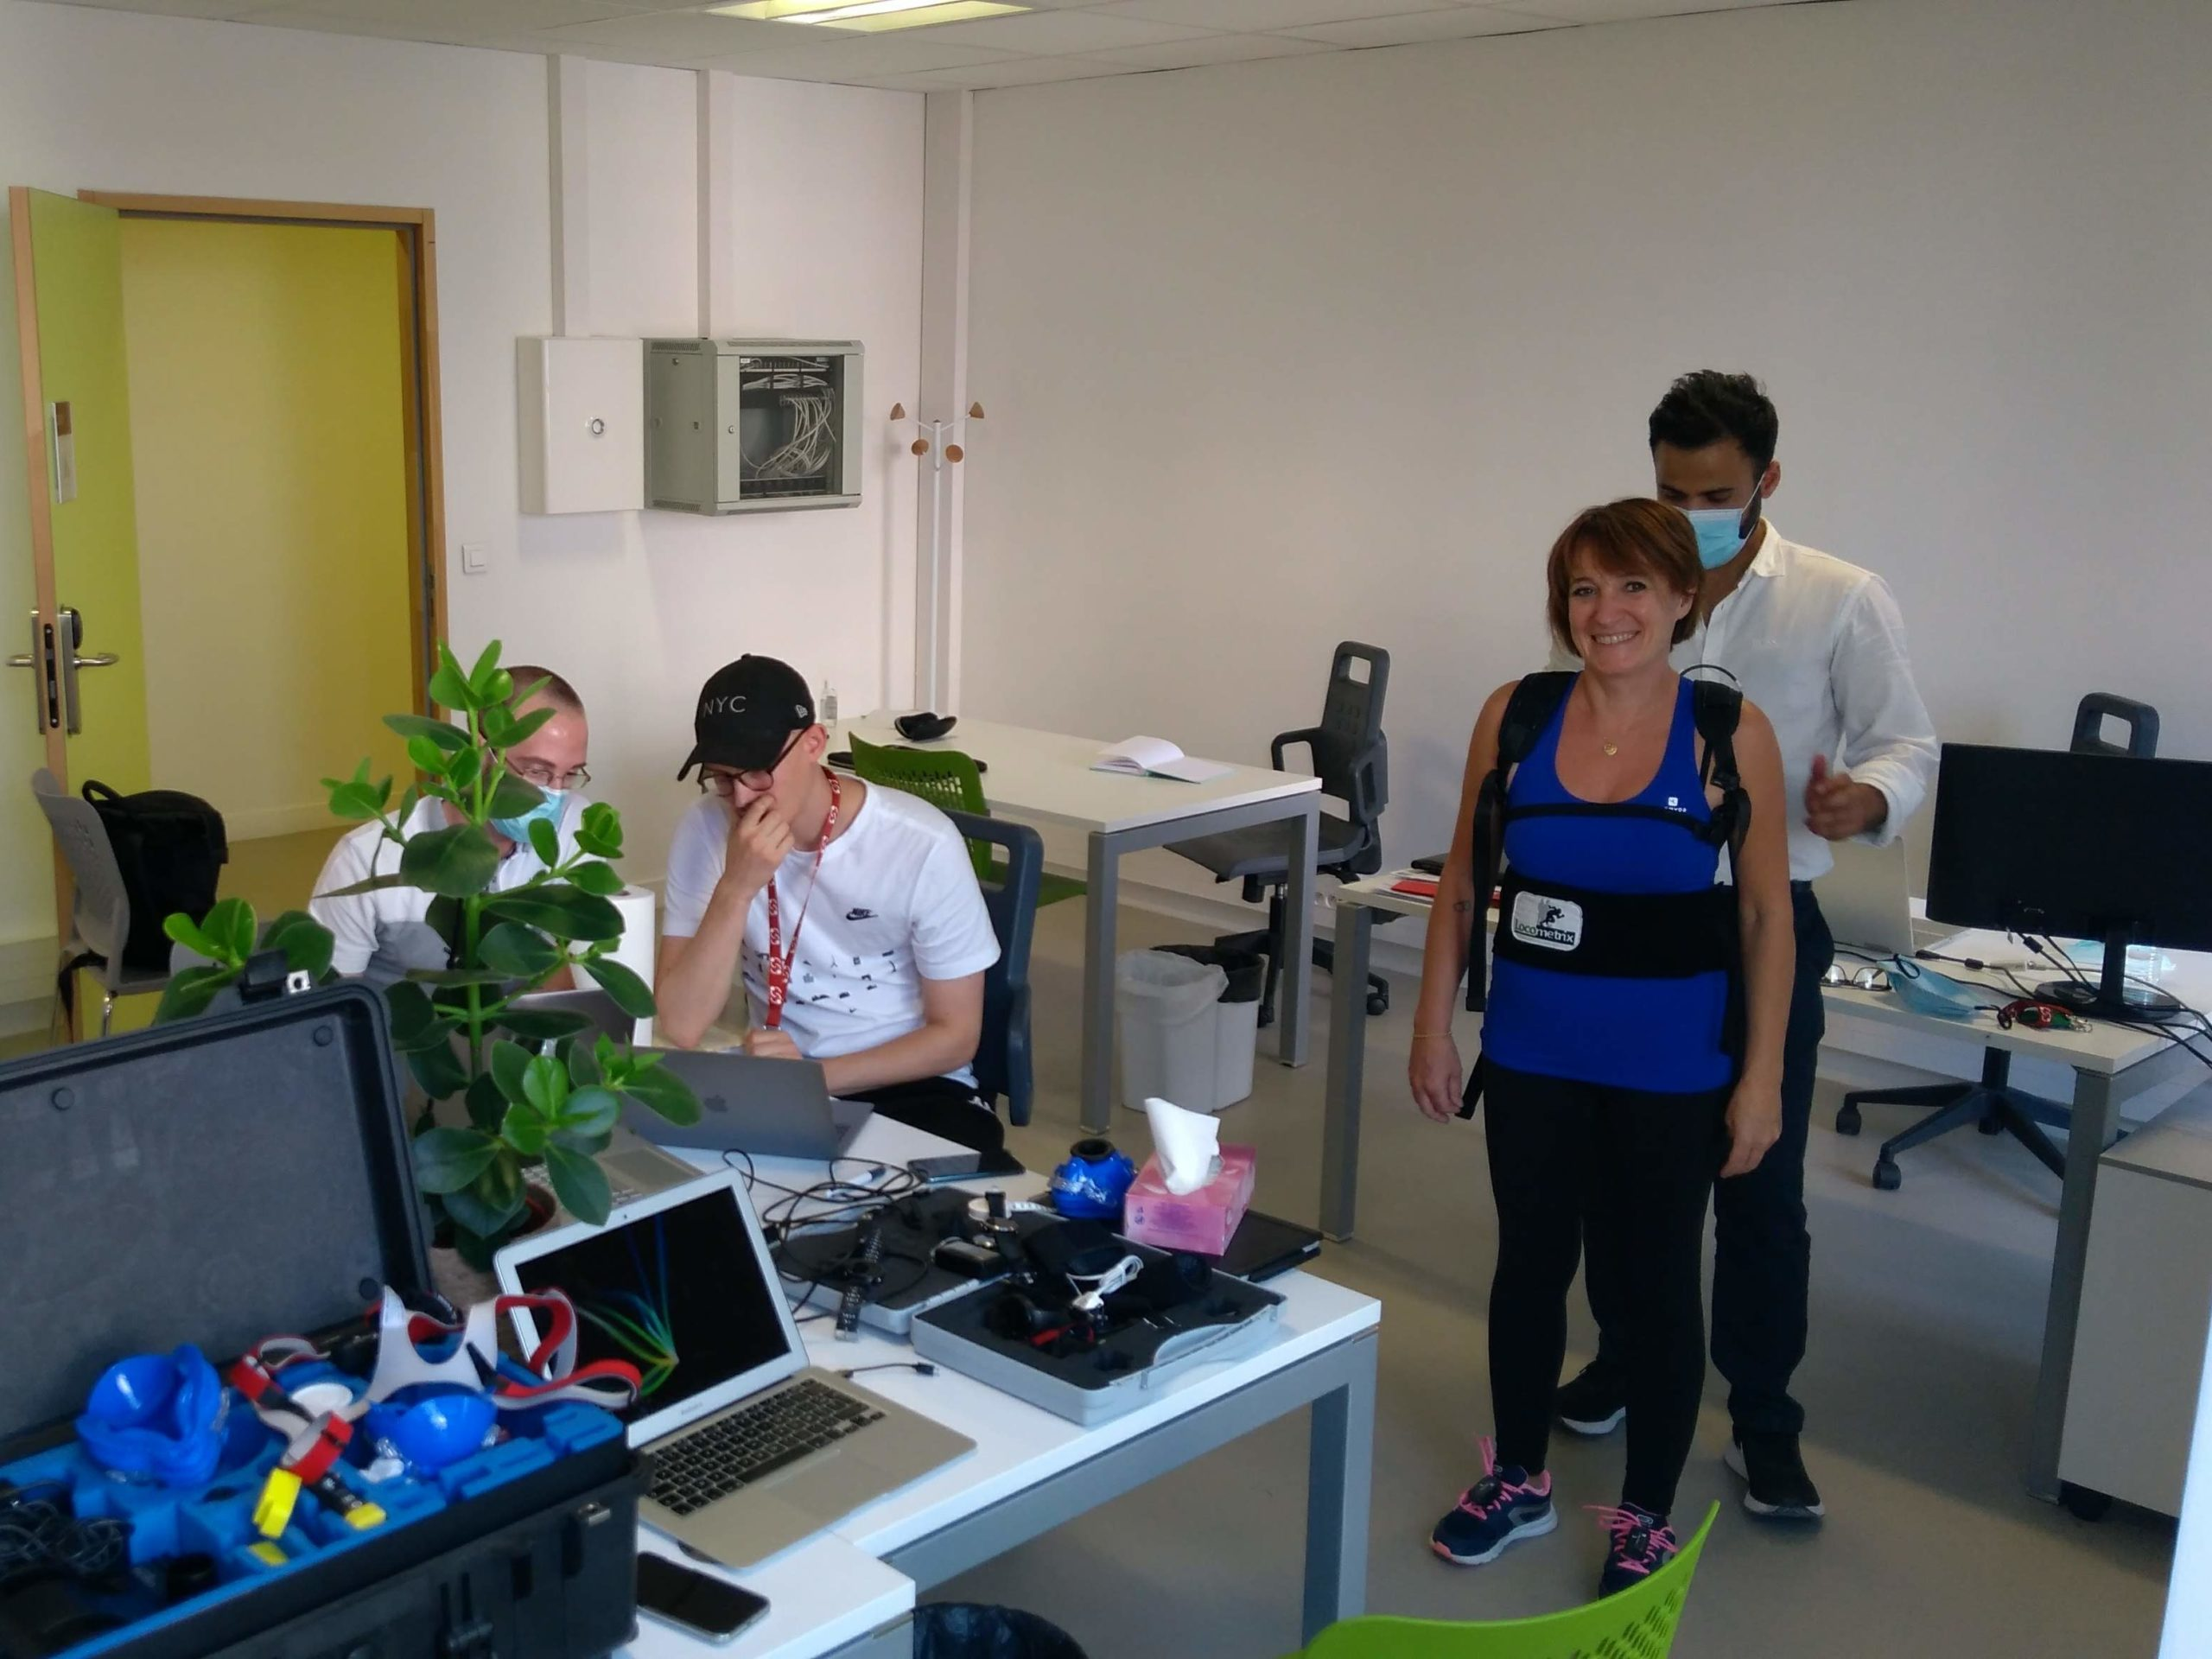 Age Impulse takes up the challenge of making Pr Billat's laboratory method accessible to as many people as possible!